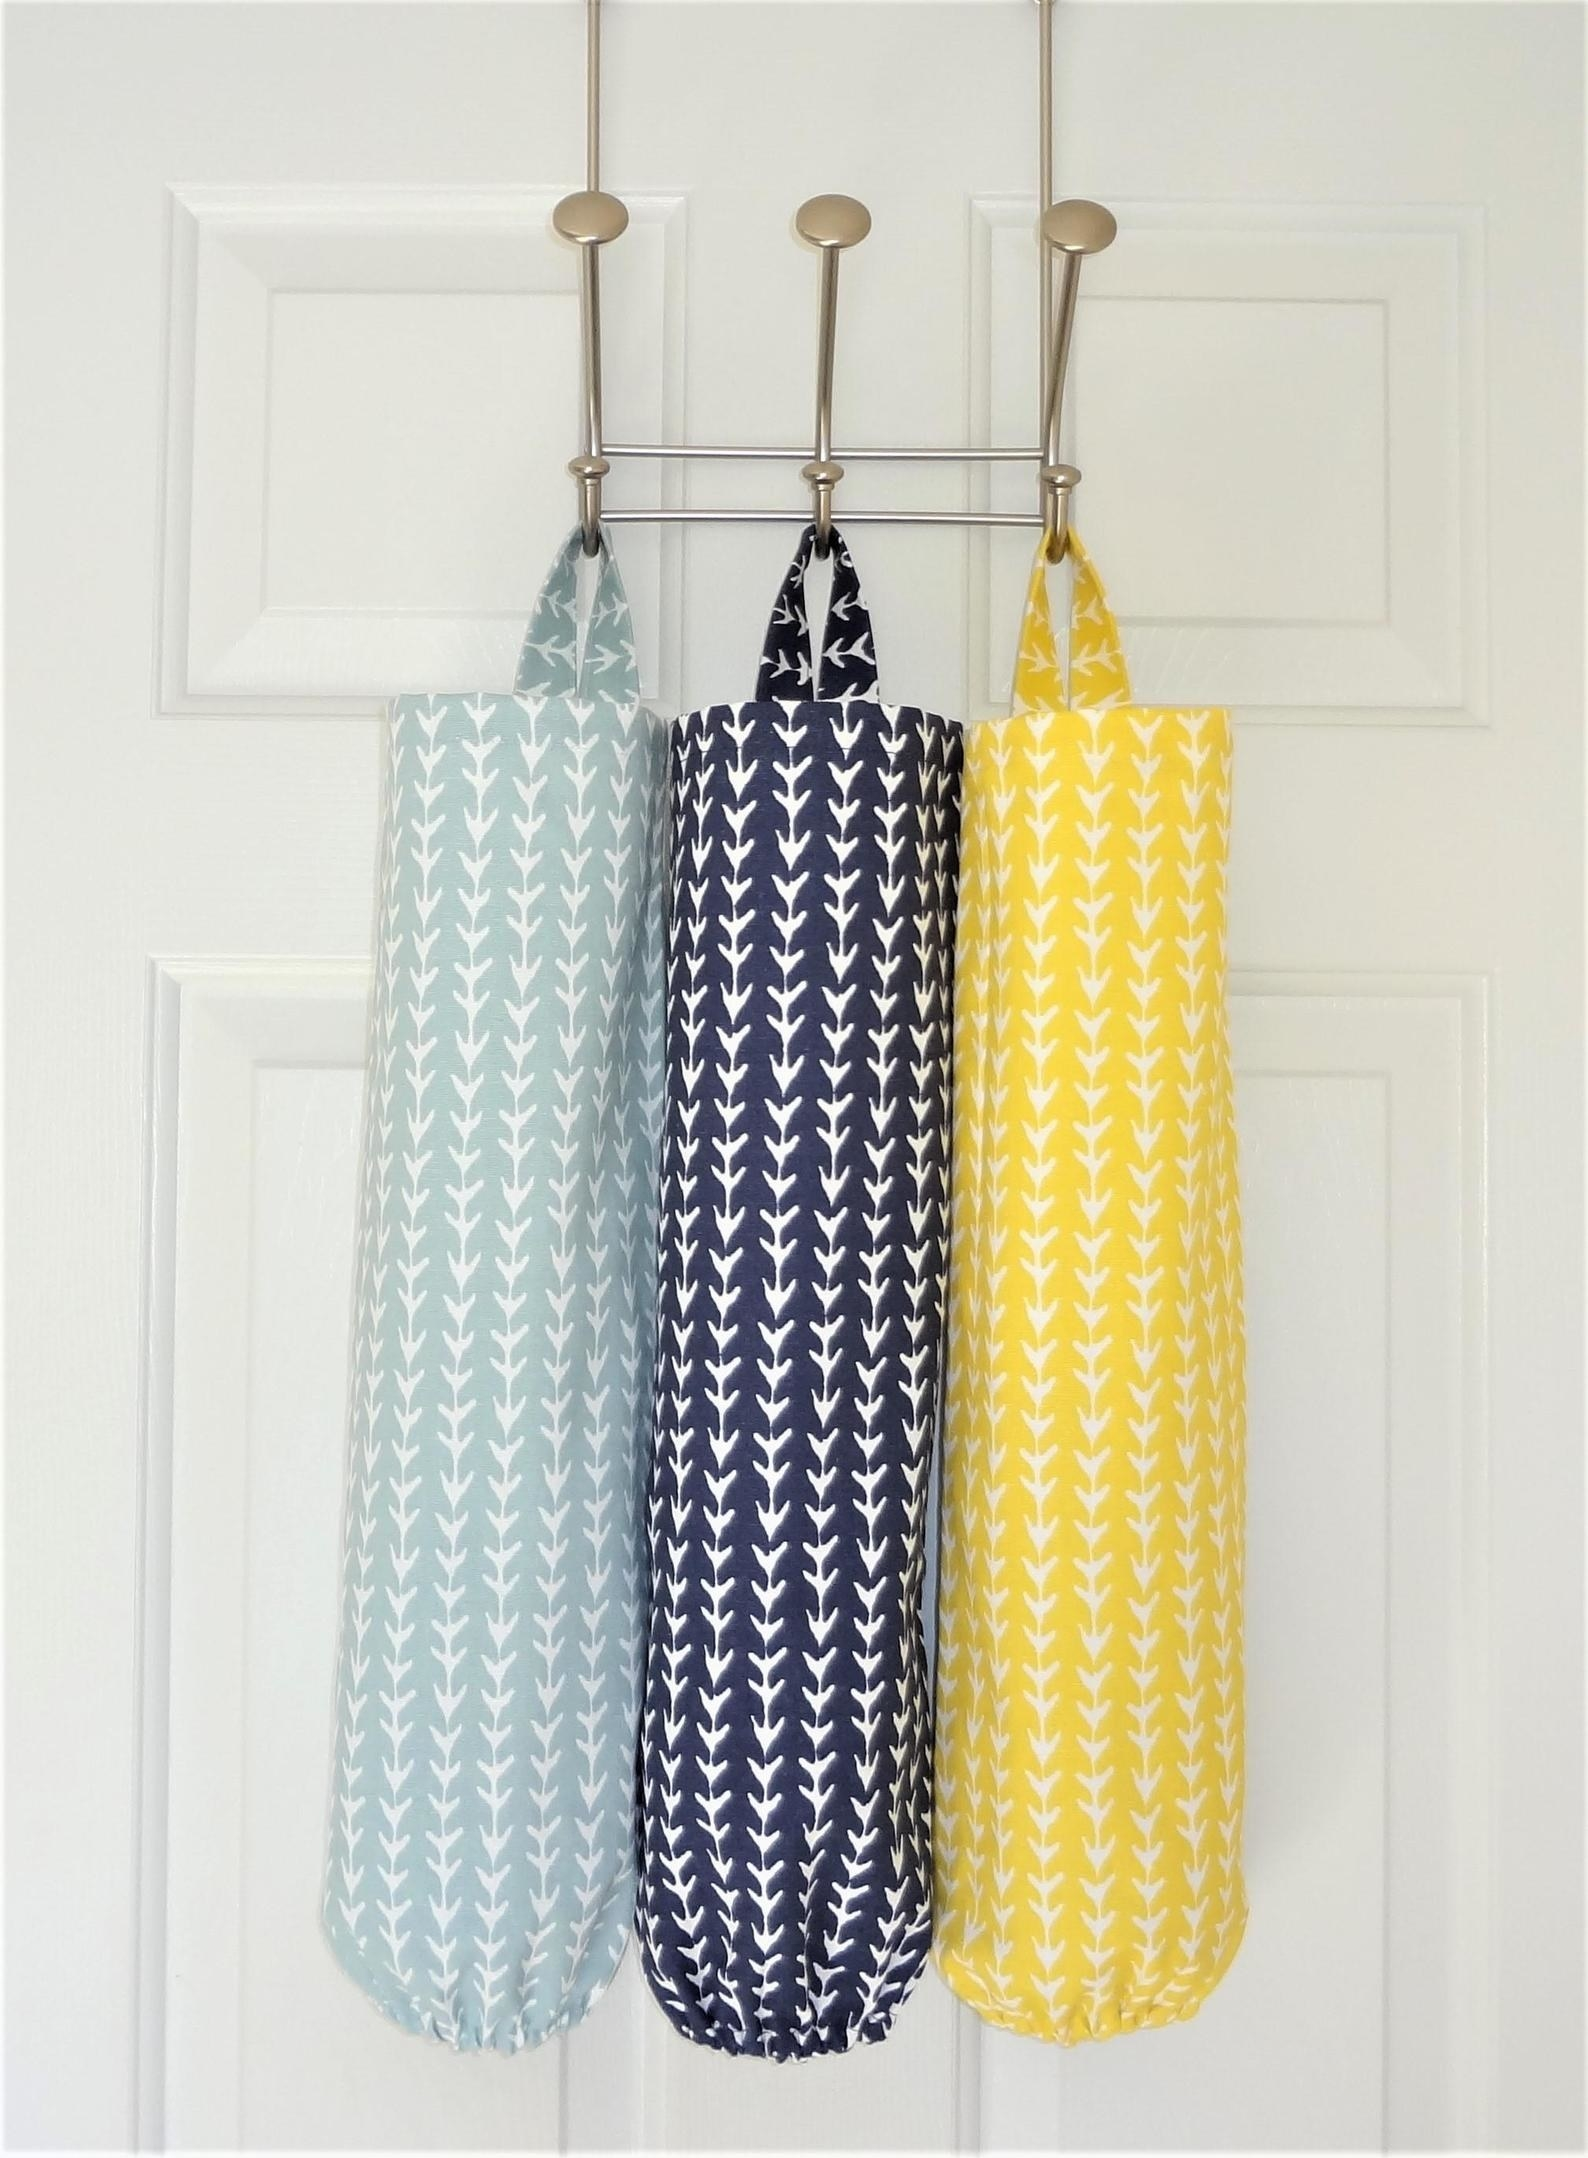 Light blue, navy, and yellow bag holders hanging from hooks on a door